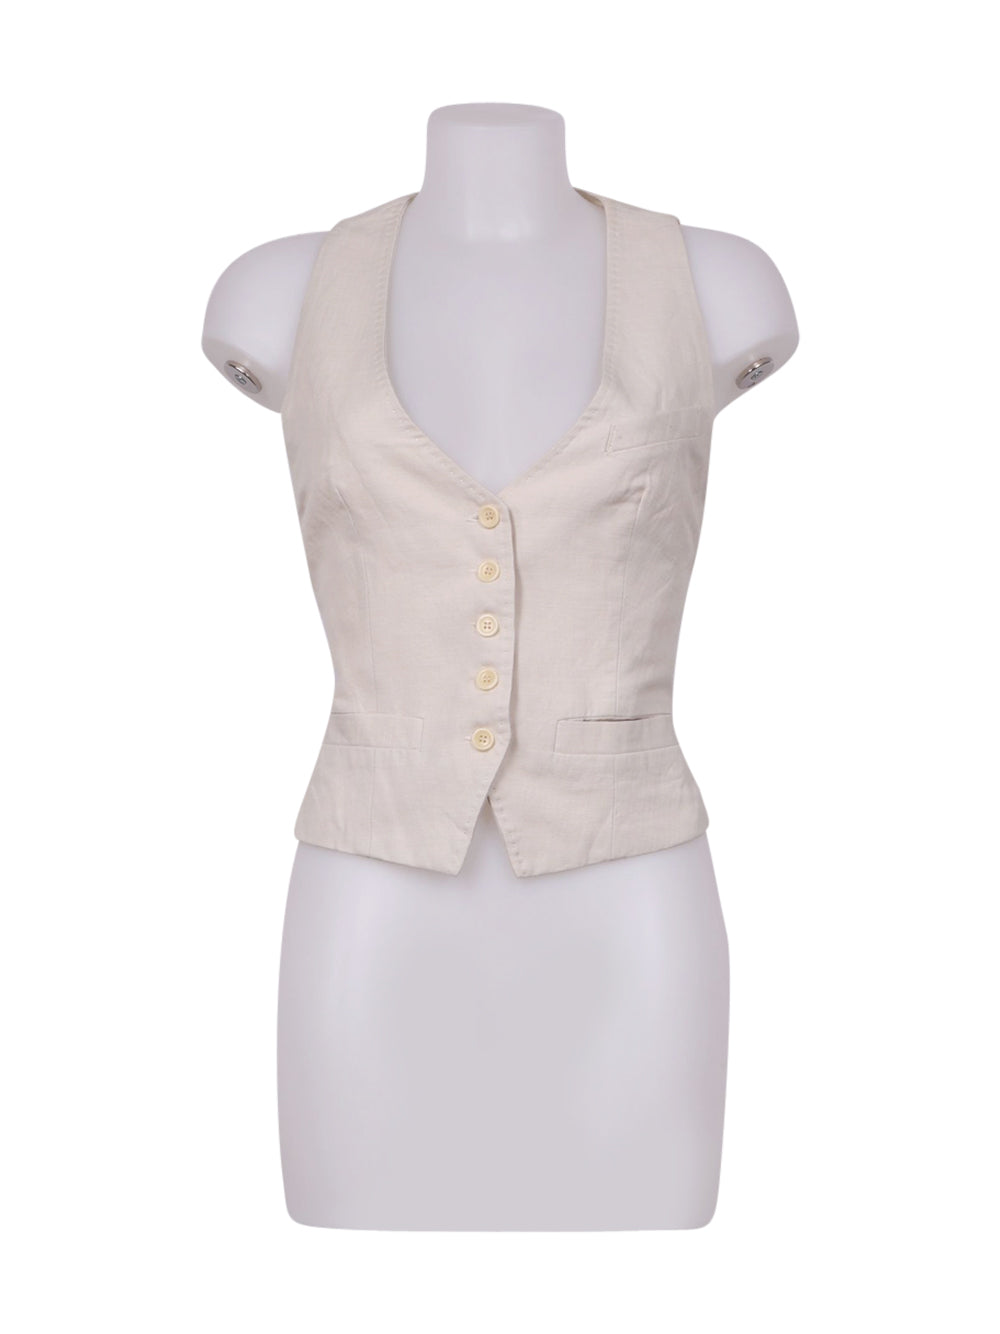 Front photo of Preloved cantiere donna jcm jey cole man Beige Woman's sleeveless jacket - size 10/M